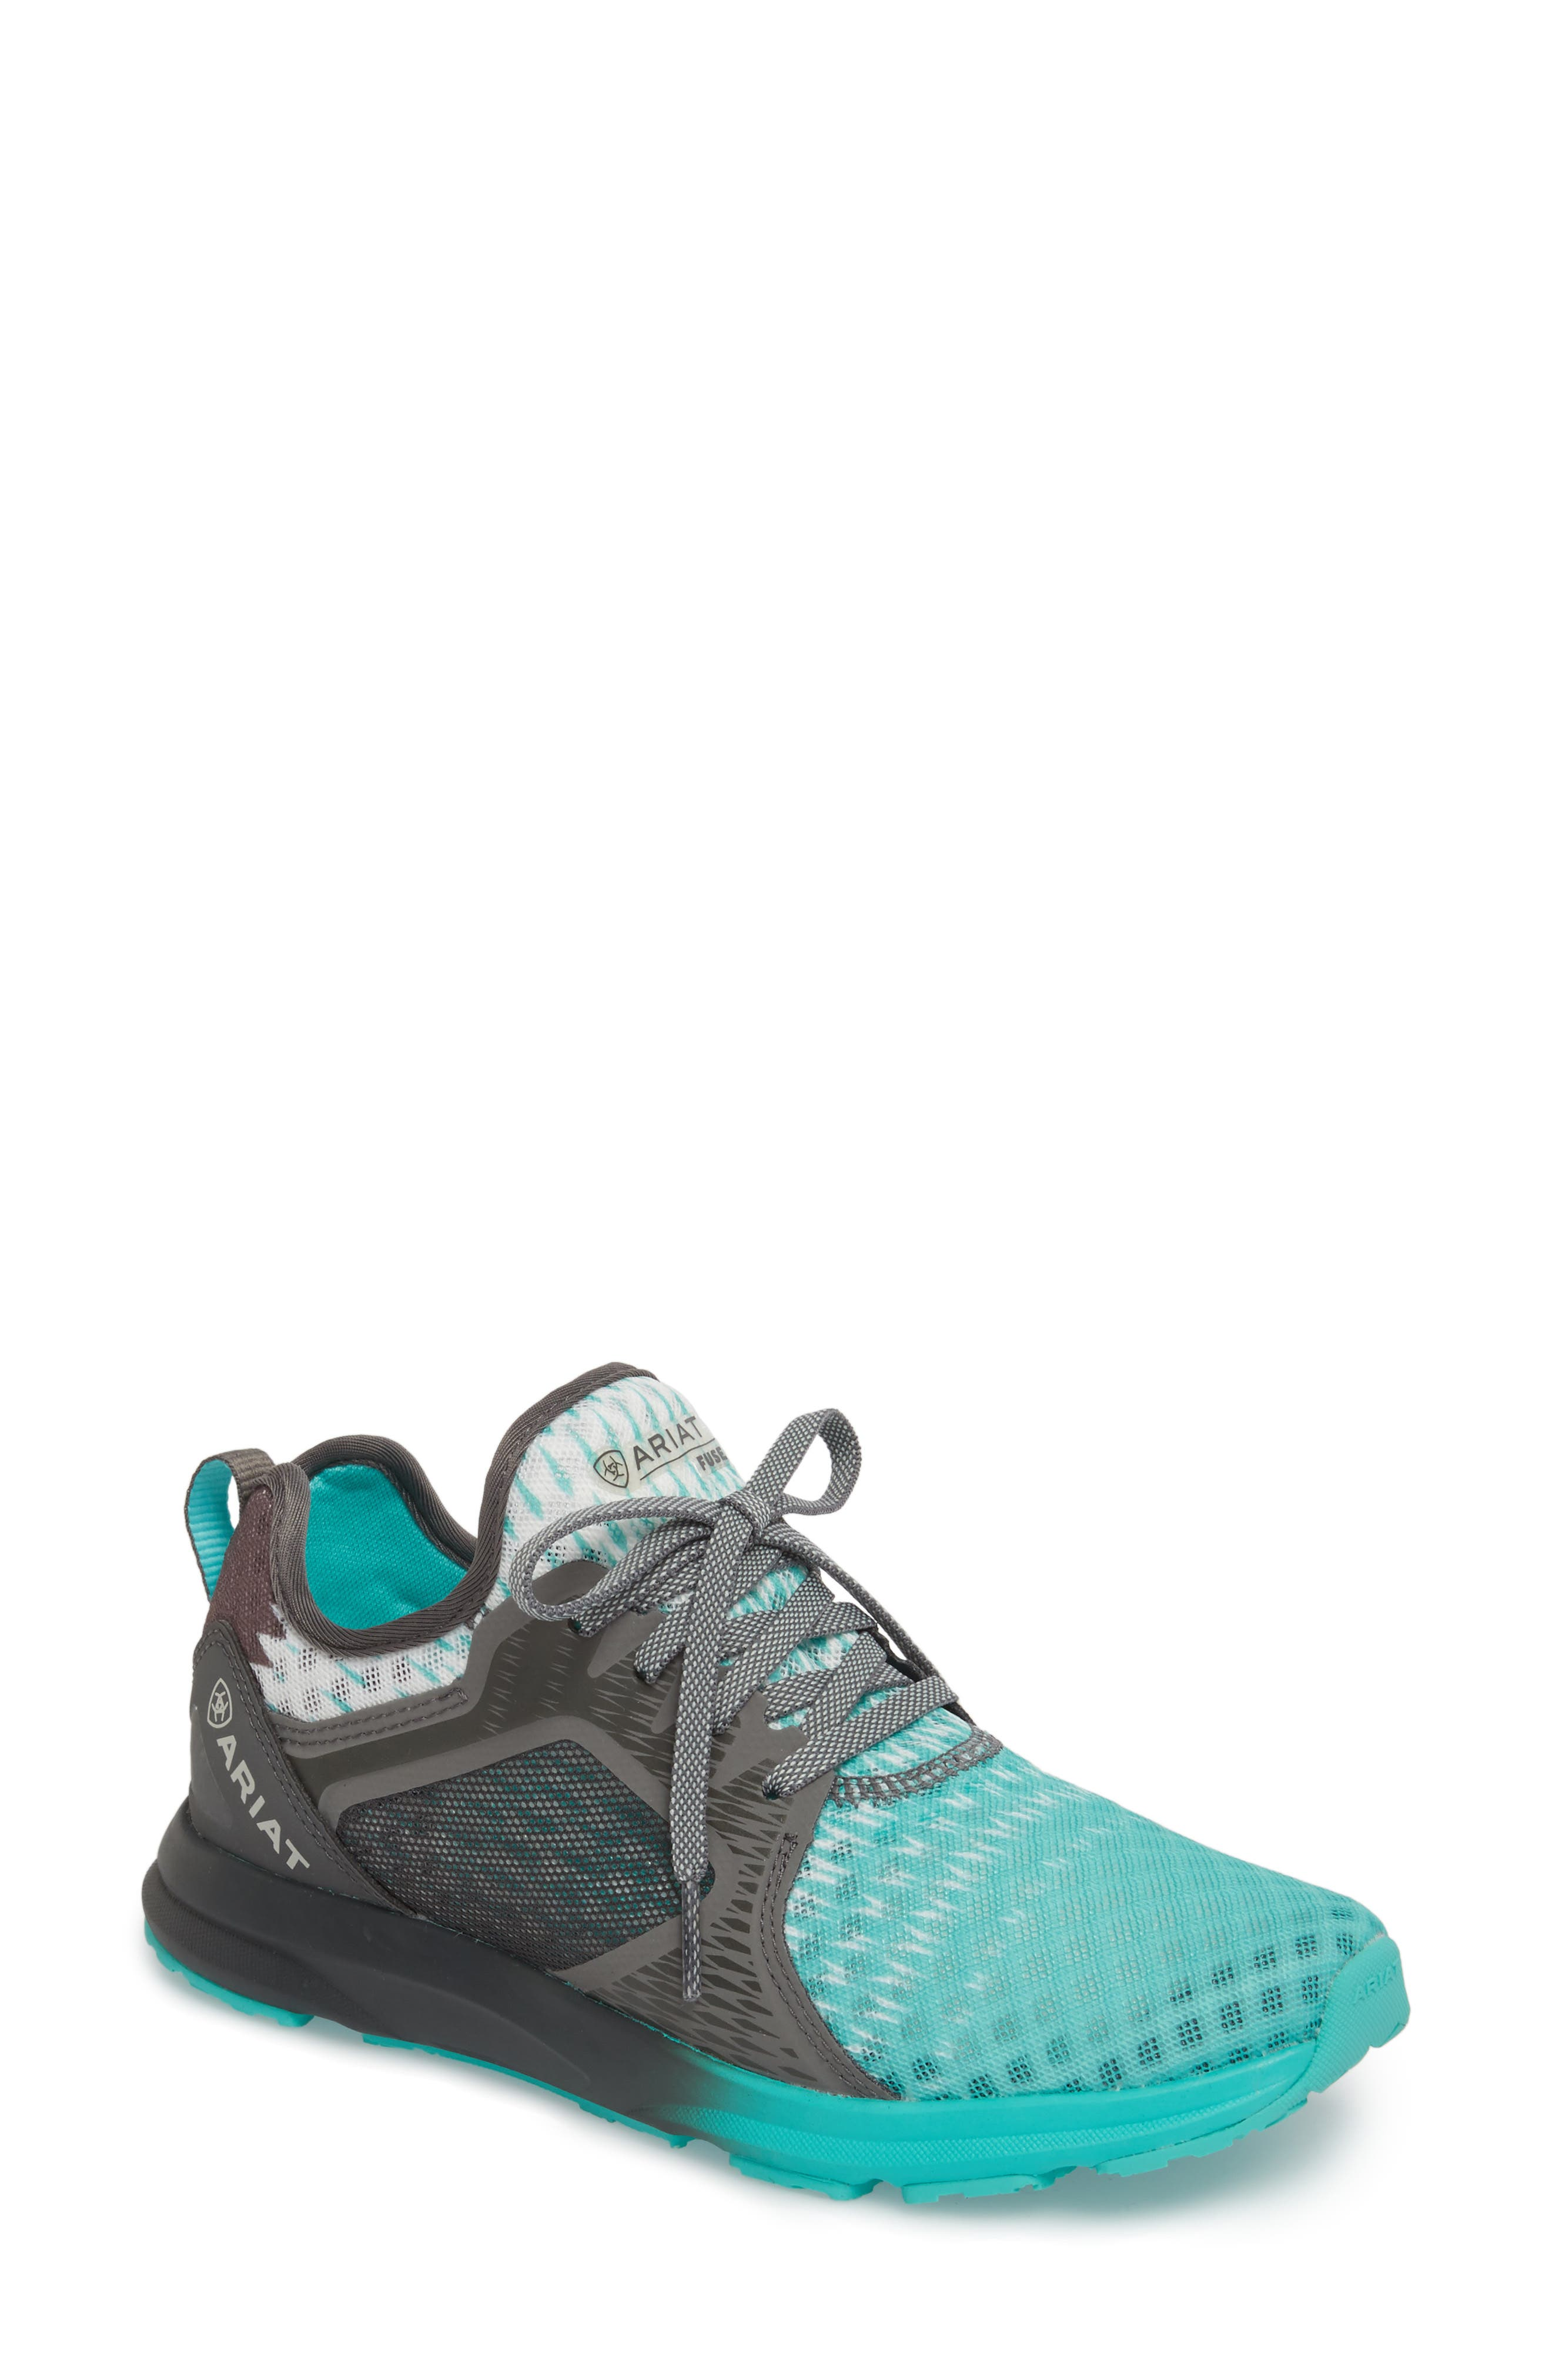 ARIAT Fuse Ombré Sneaker, Main, color, TURQUOISE MESH